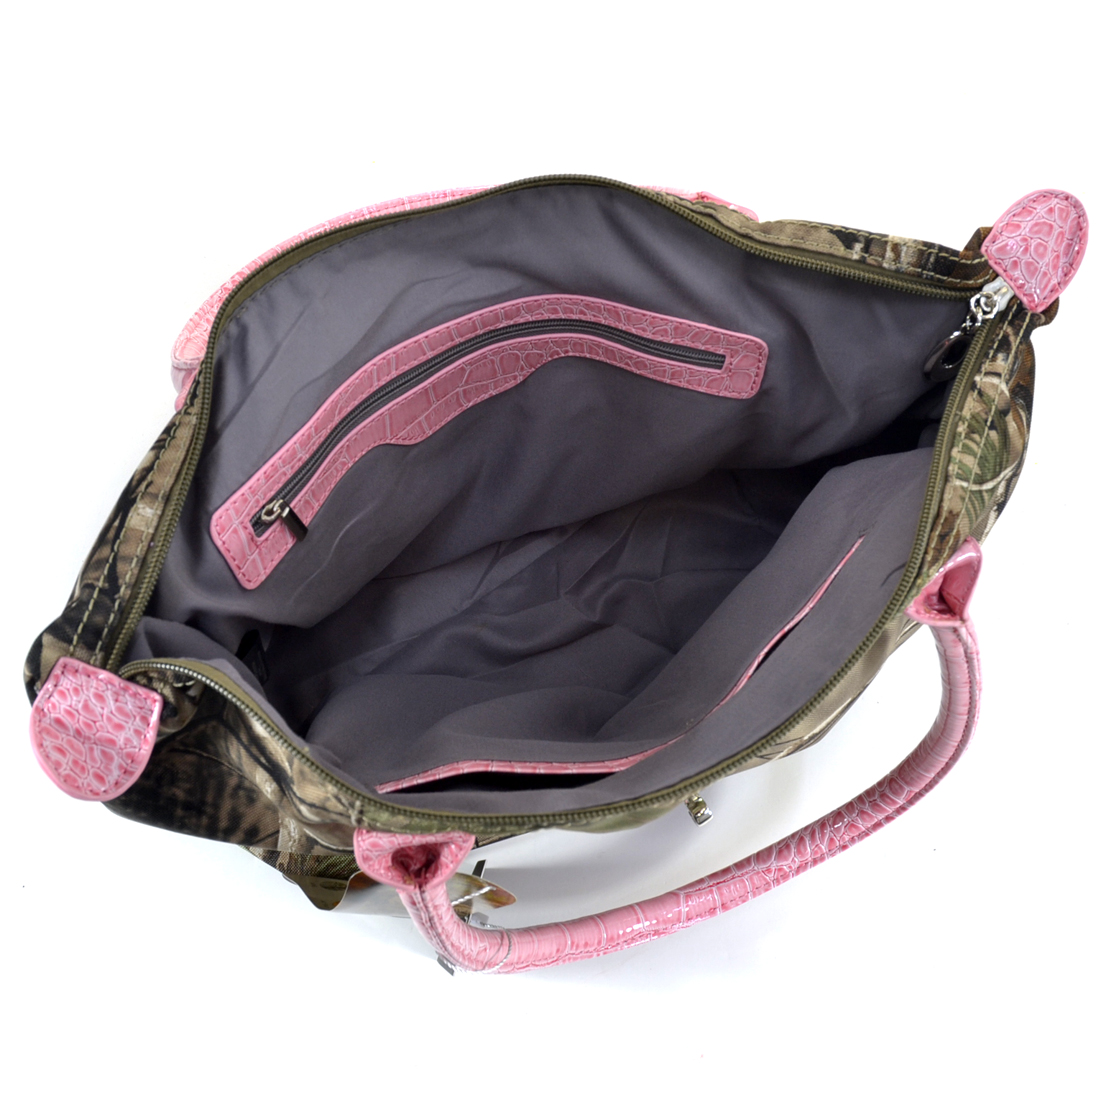 Realtree ® camouflage tote bag with twist lock accent and pink trim - Camouflage/Coffee